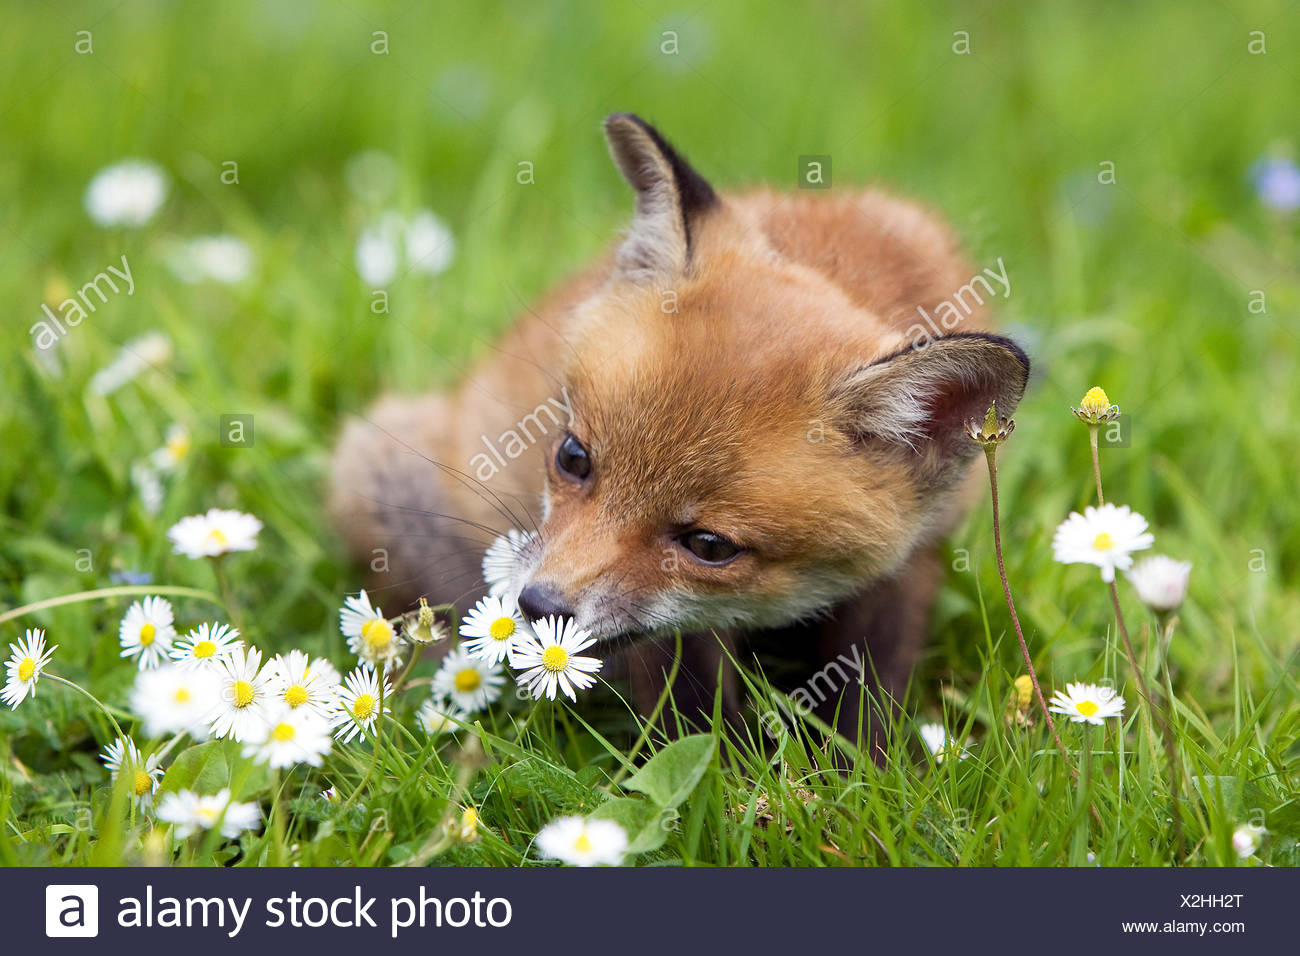 Red Fox, vulpes vulpes, Cub sitting with Flowers, Normandy - Stock Image